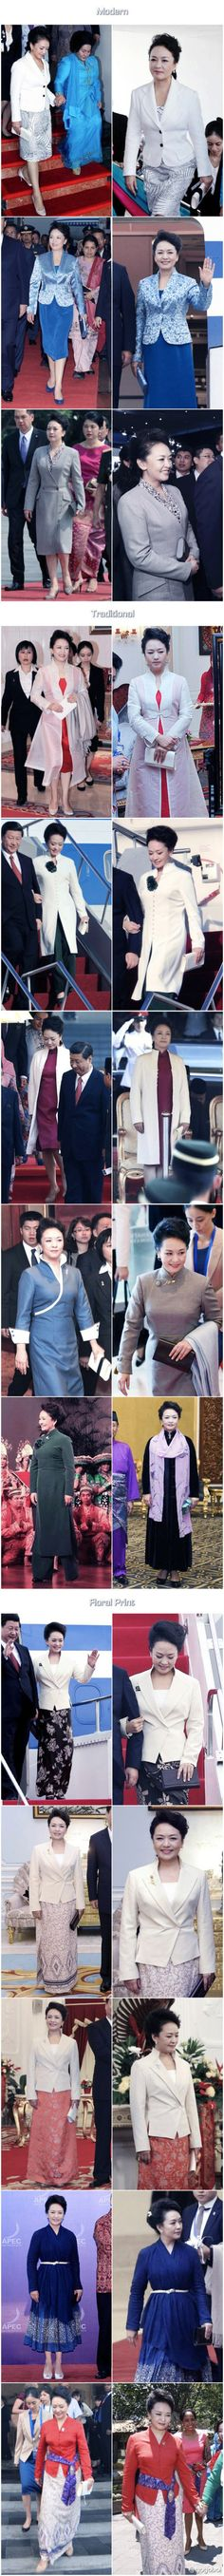 Inspiration 3: China's First Lady - Peng Liyuan fully demonstrates the traditional Chinese elements on her dresses.